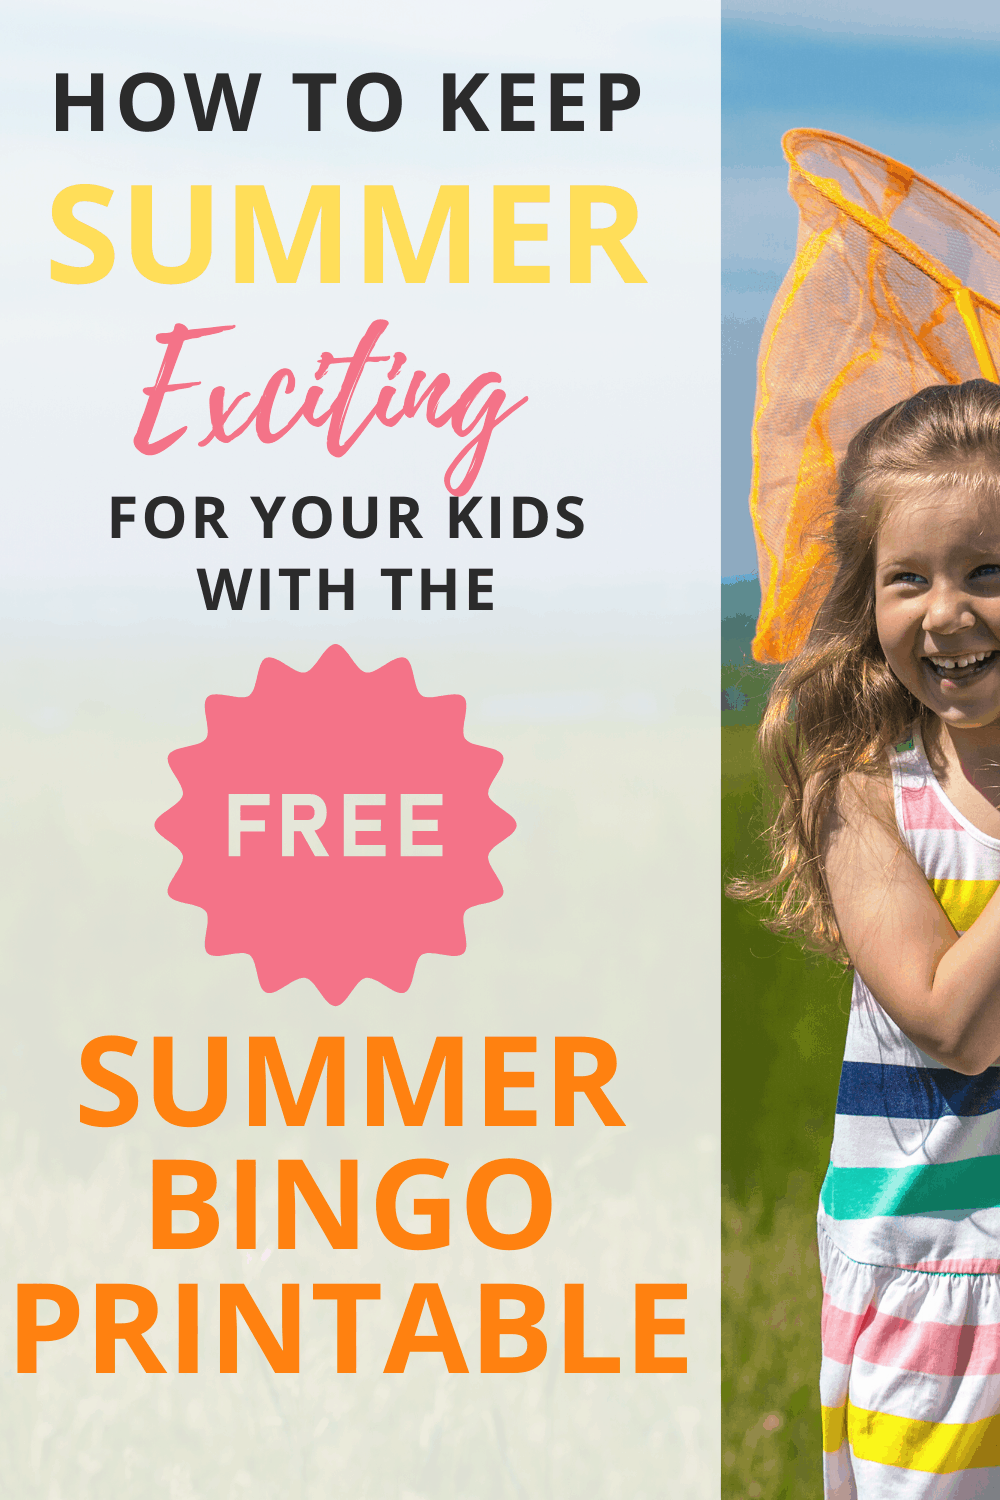 How to Keep Summer Exciting for Your Kids by Playing Summer Bingo